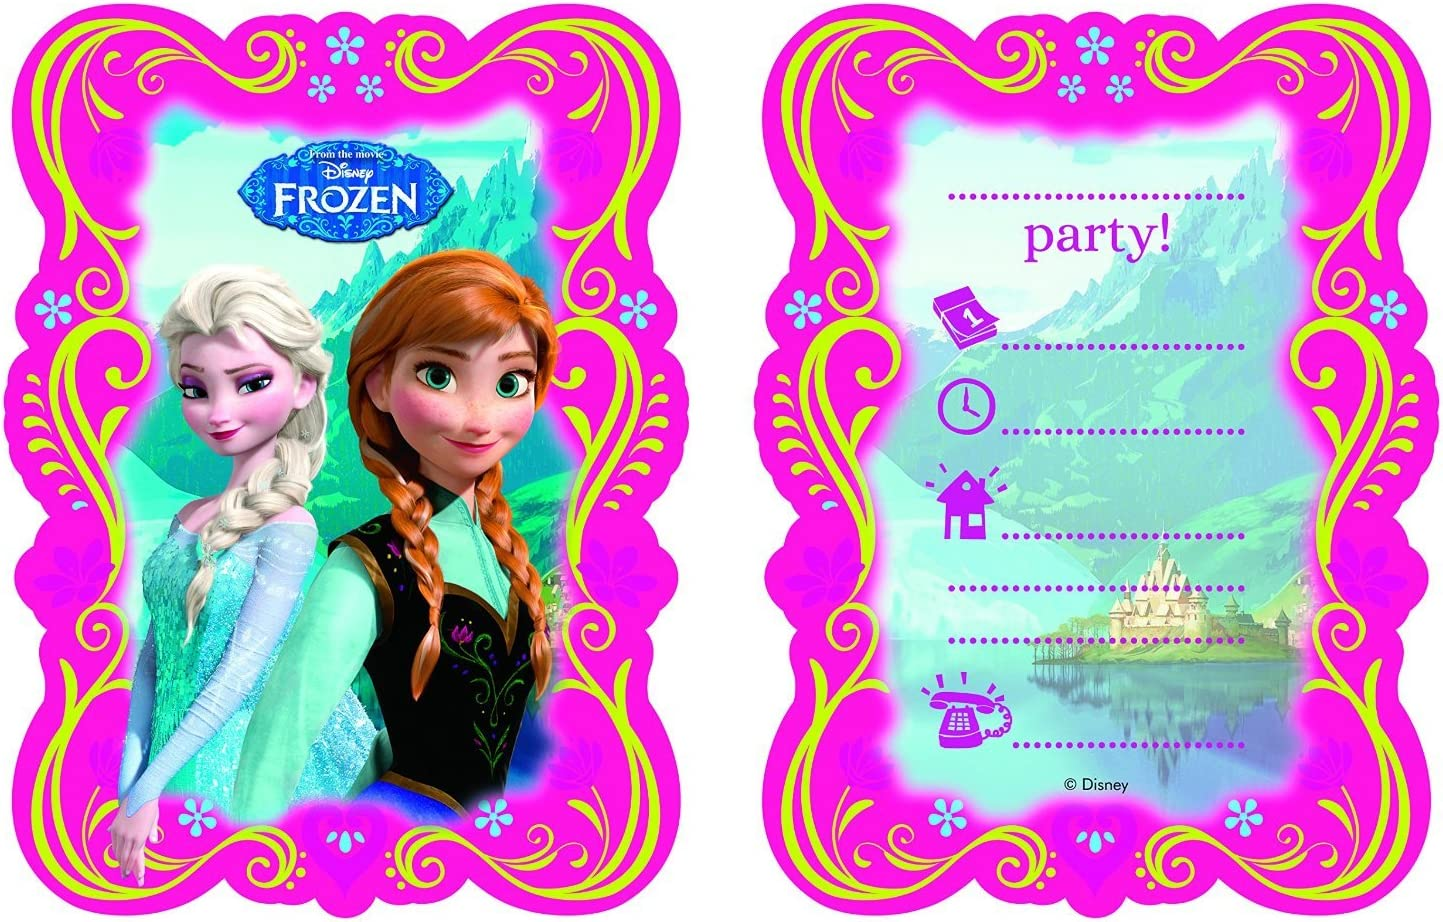 CARTE INVITATION ANNIVERSAIRE DISNEY REINE DES NEIGES FROZEN lot de 4,8 12 ou 16